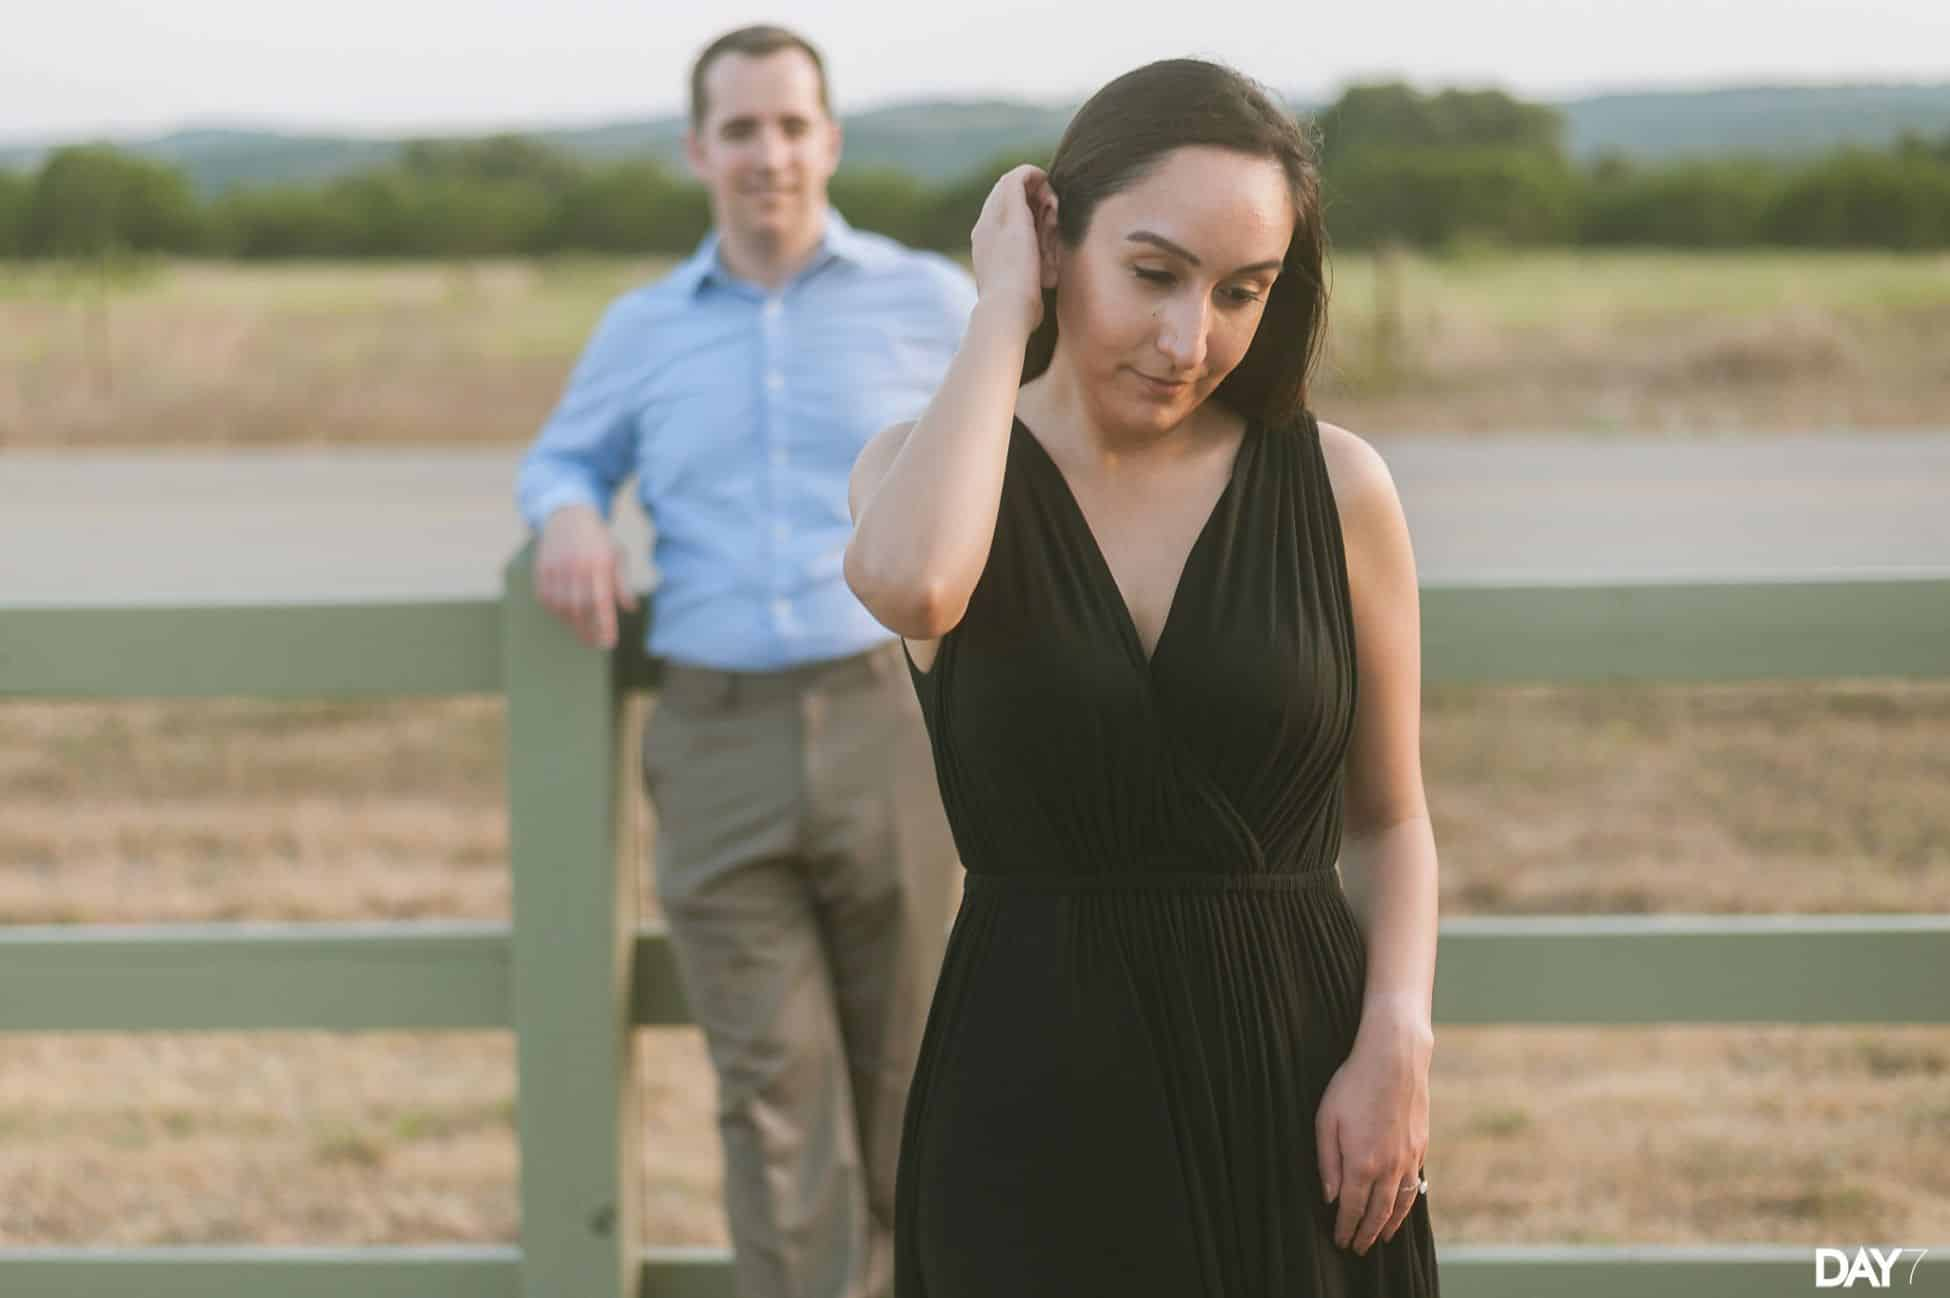 Black dress engagement photos - Hill Country Engagement Photos With Black Dress